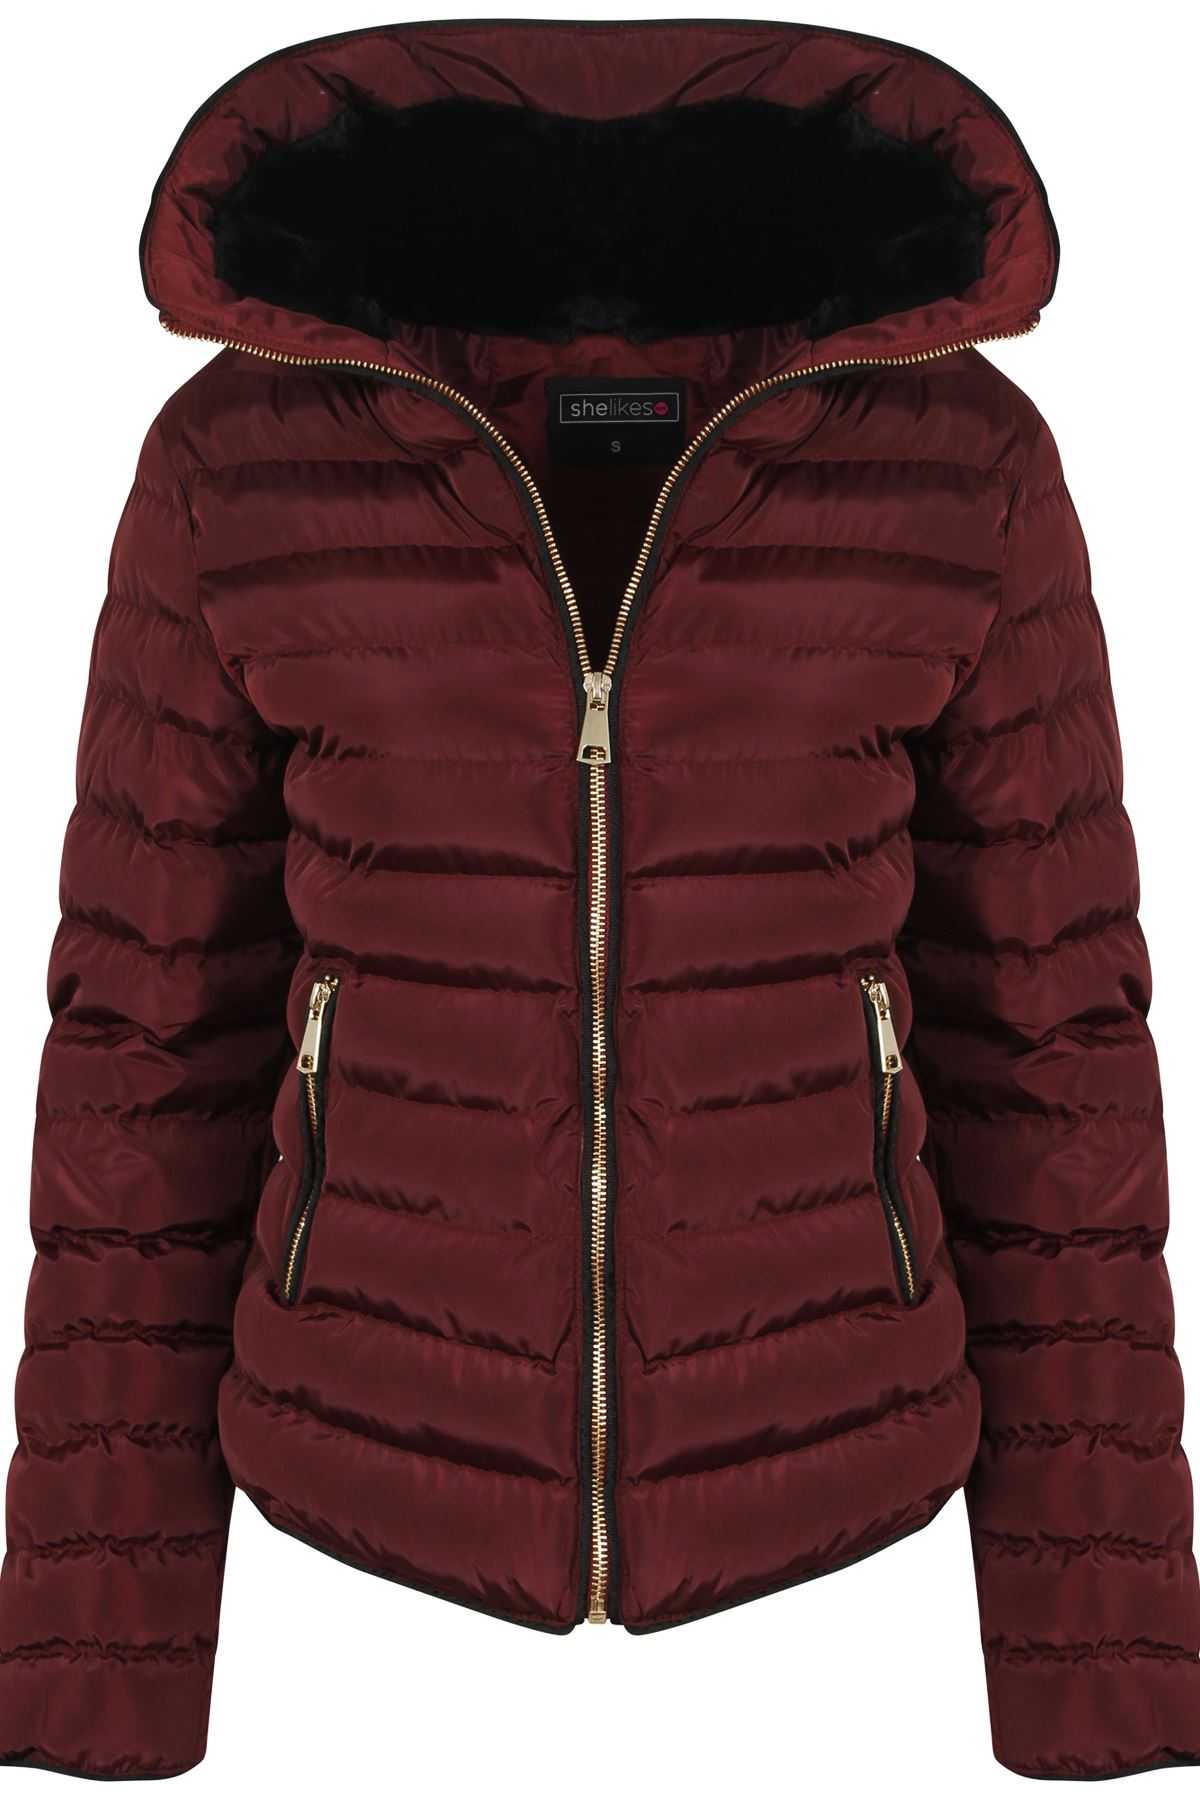 Womens quilted jackets uk